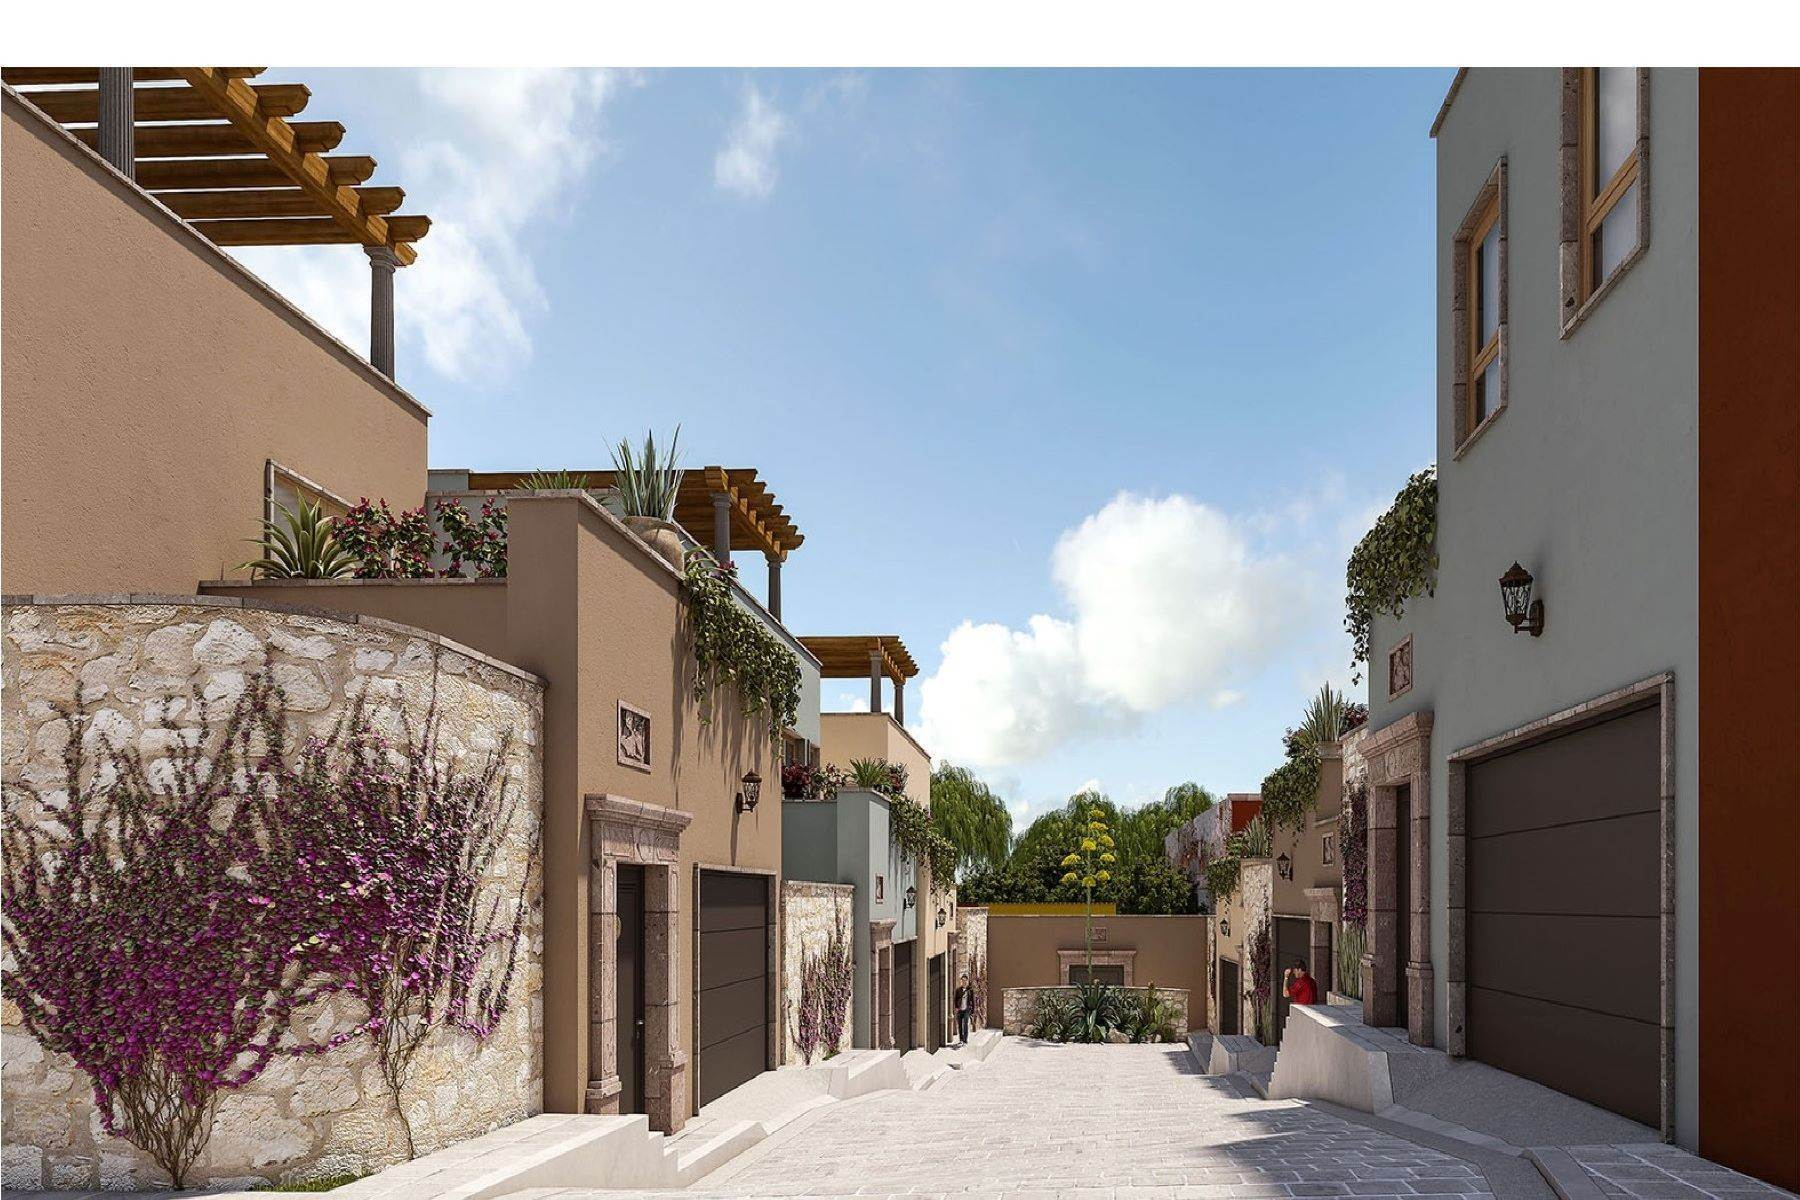 Property for Sale at Quiote I Cerrada de Grillo San Miguel De Allende, Guanajuato 37770 Mexico